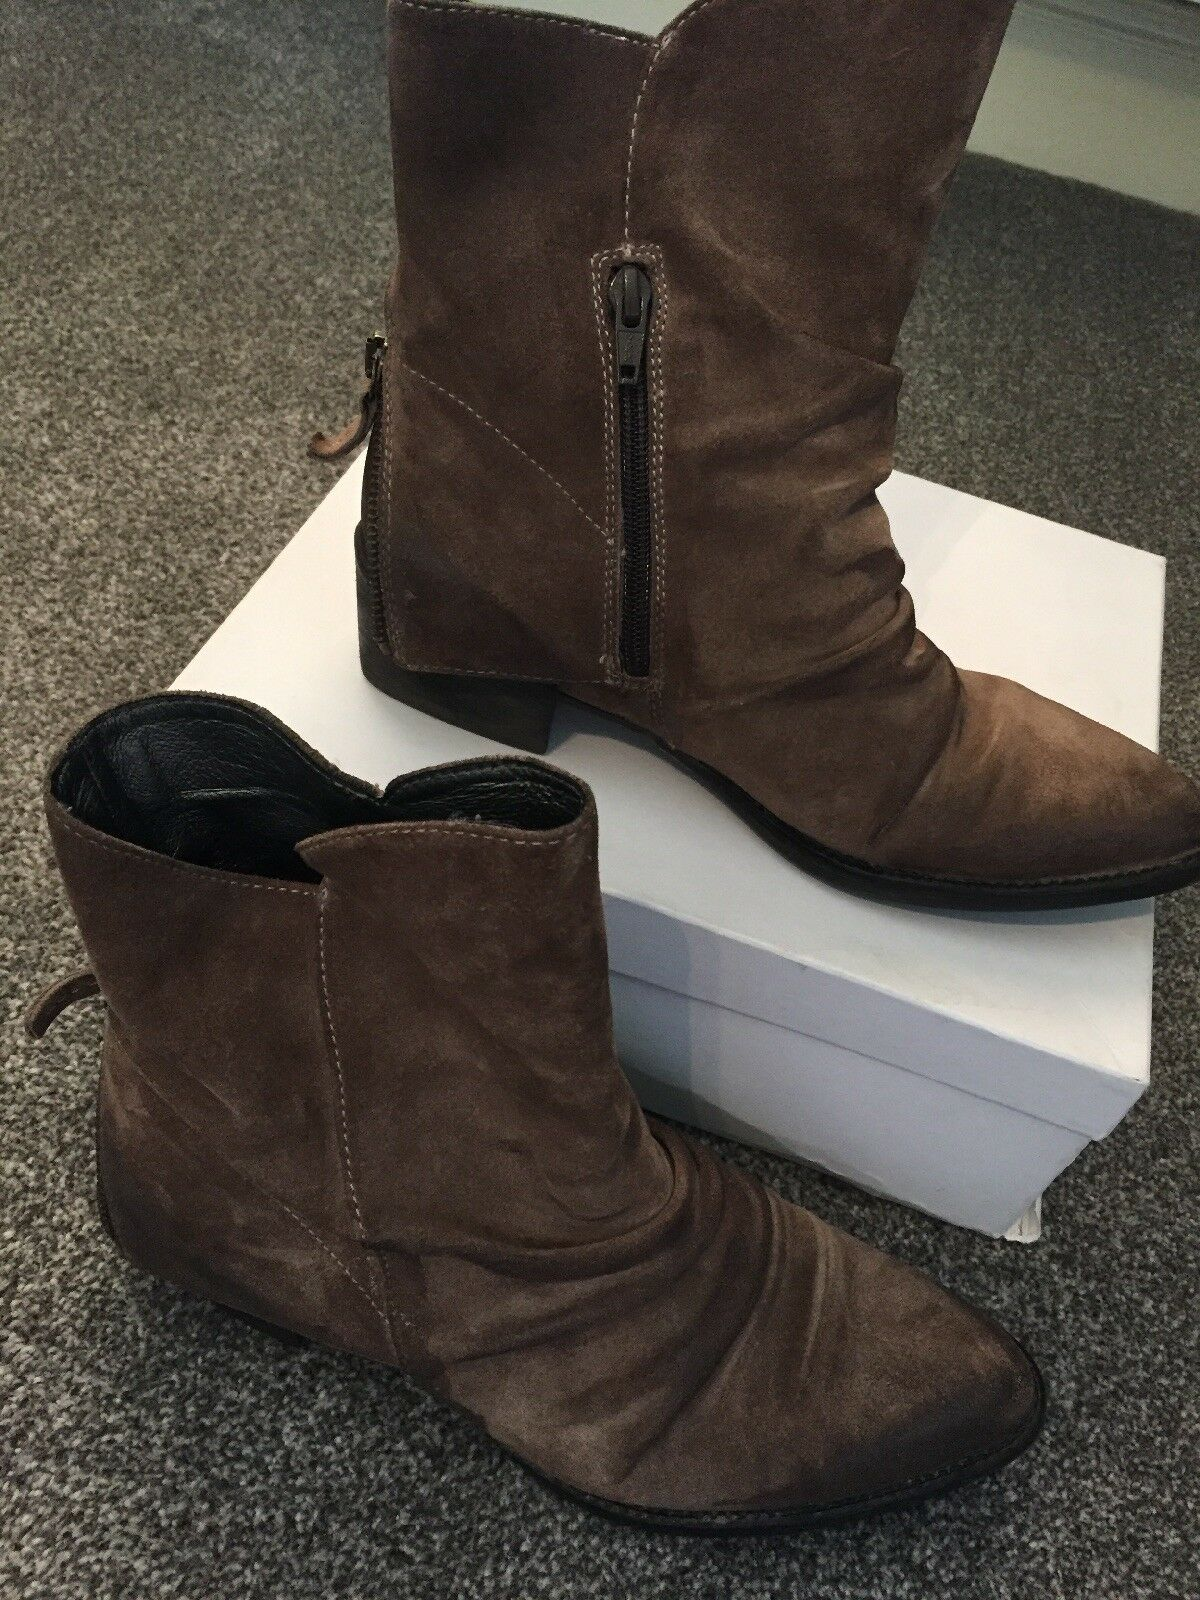 Italian Brown Distressed Suede Western Ankle Boots Zip Detail Size 5 38 VGC